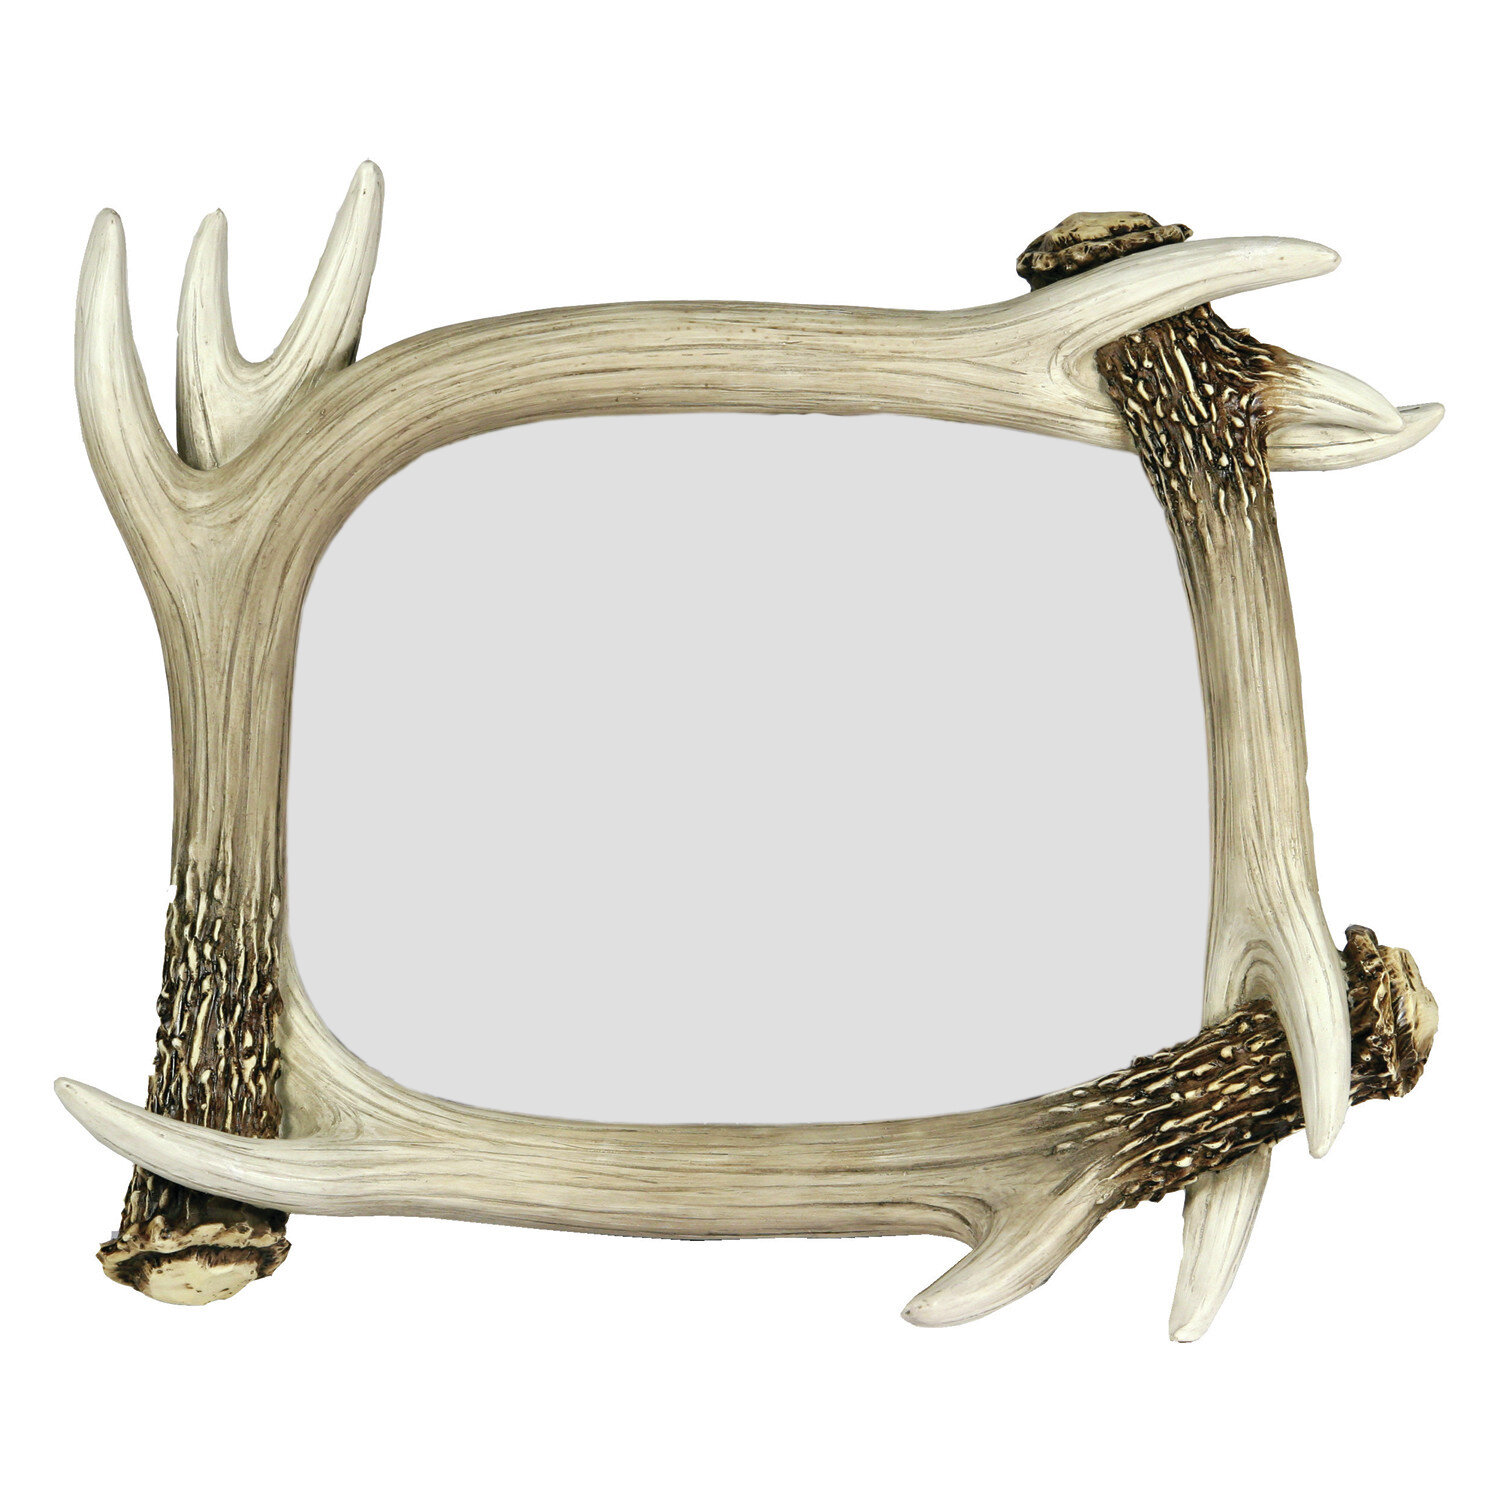 River\'s Edge Products Deer Antler Picture Frame | Wayfair